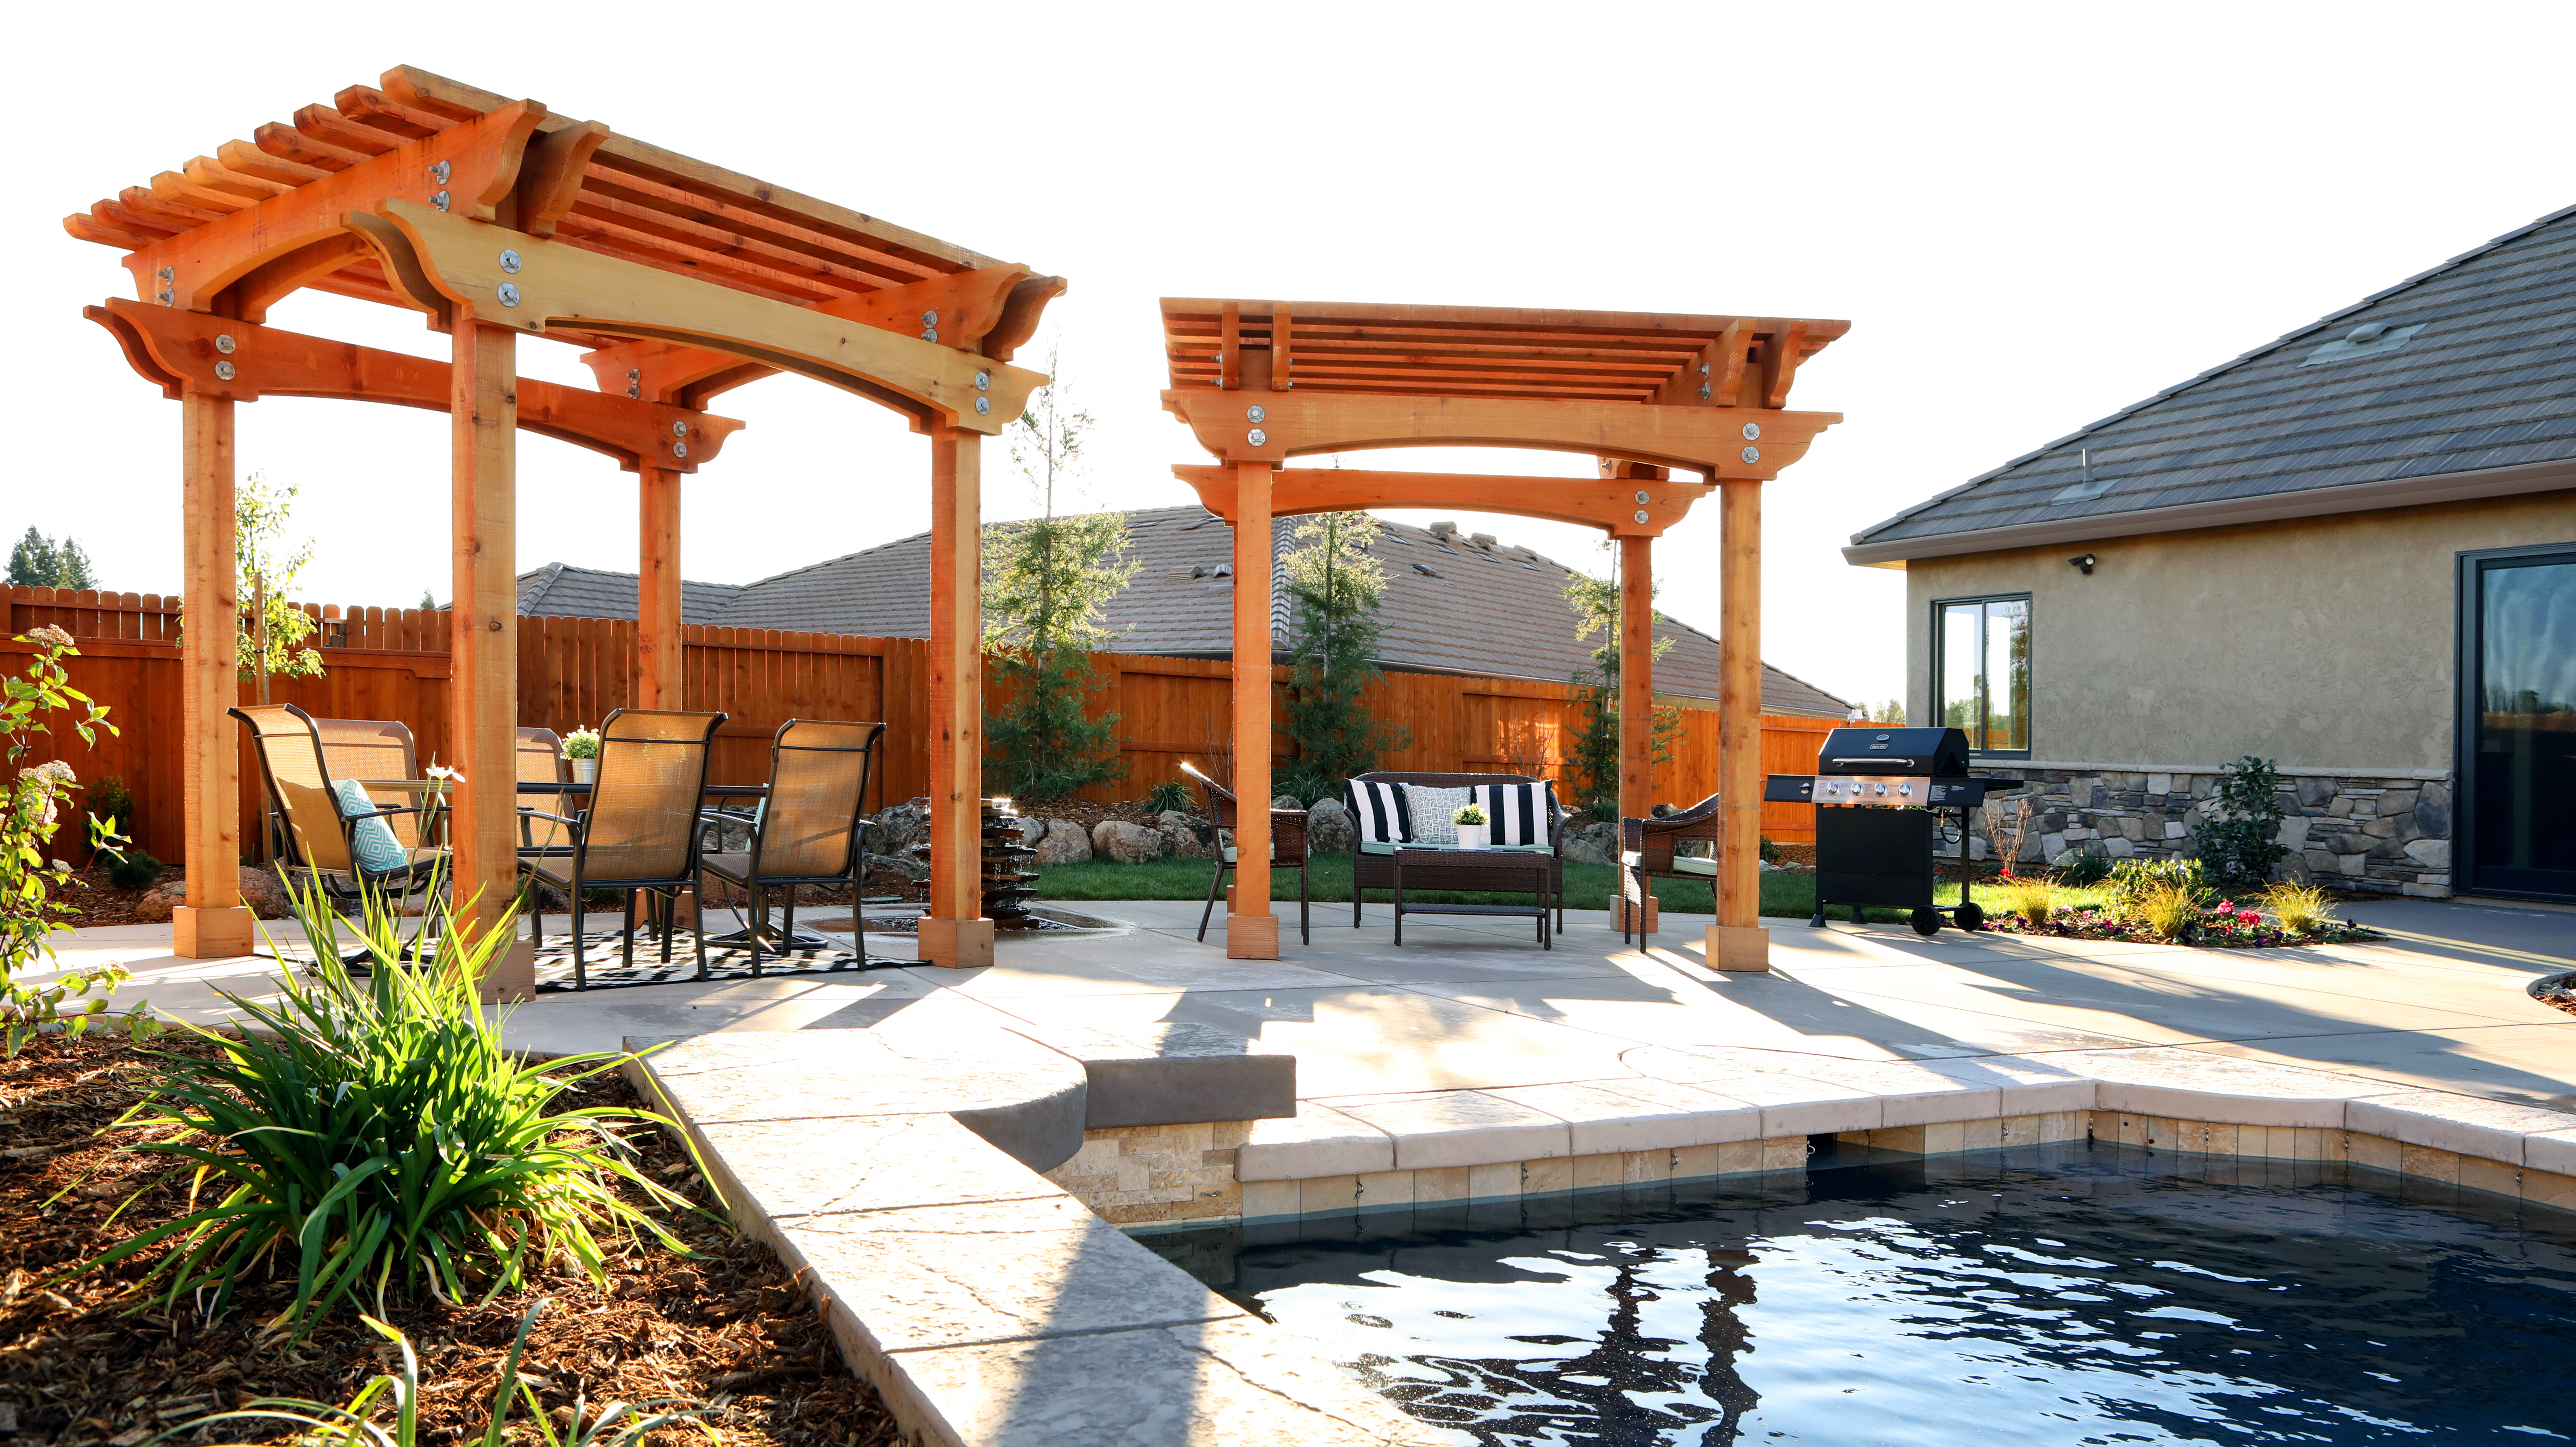 Double Humboldt Redwood Pergolas Enhance Pool Deck on New, Custom Home in Redding, CA